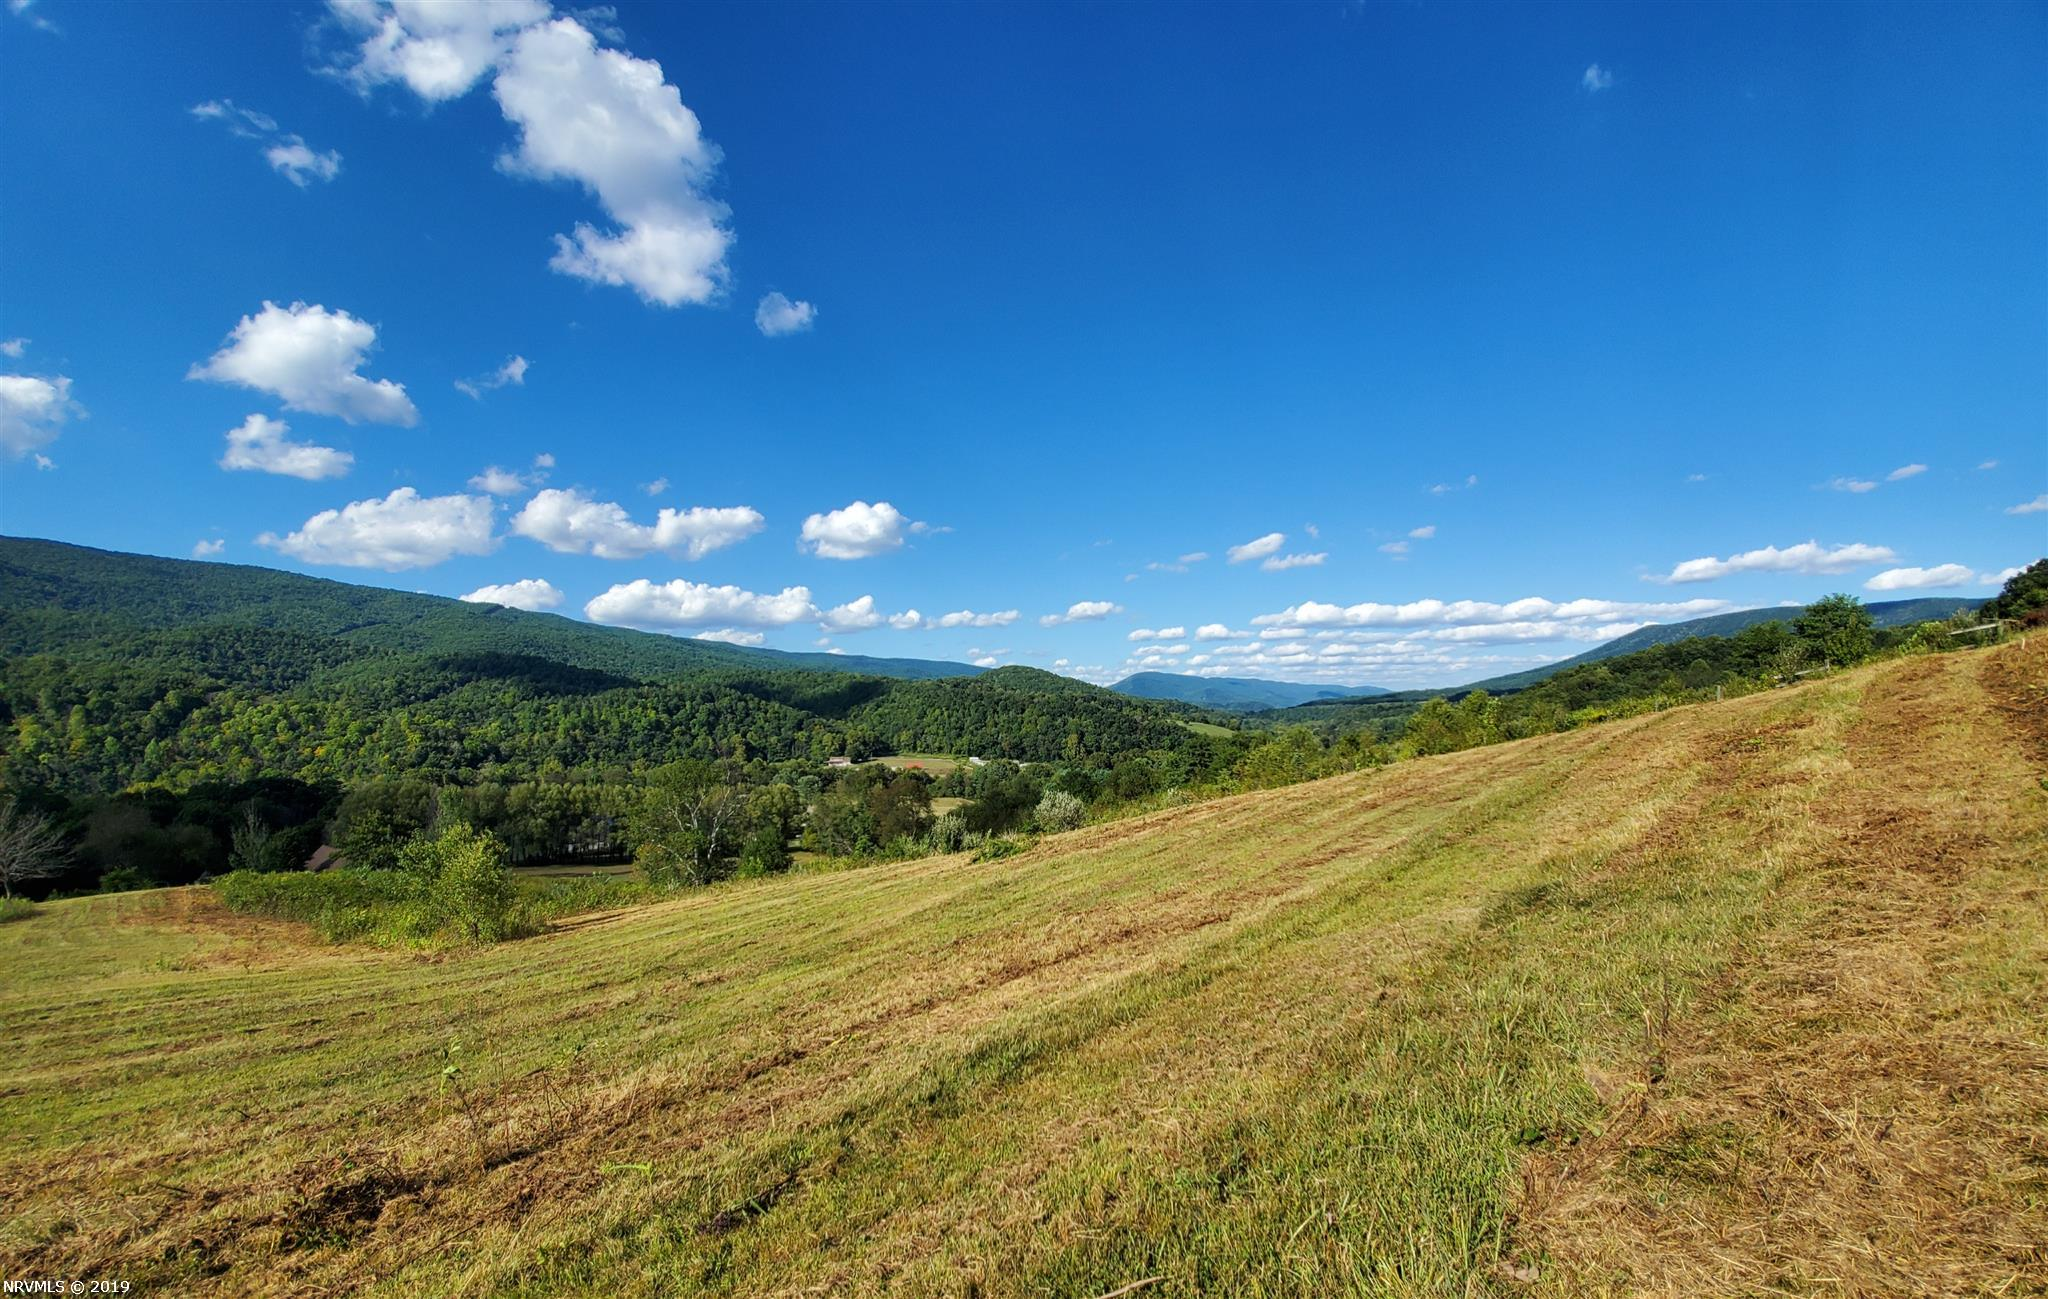 Breathtaking views in Narrows! 10 minutes away from US-460, this land offers a great opportunity to build a home with spectacular views in a convenient location. The perimeter of the property is enclosed with a fence, allowing for optimal use of the pasture.